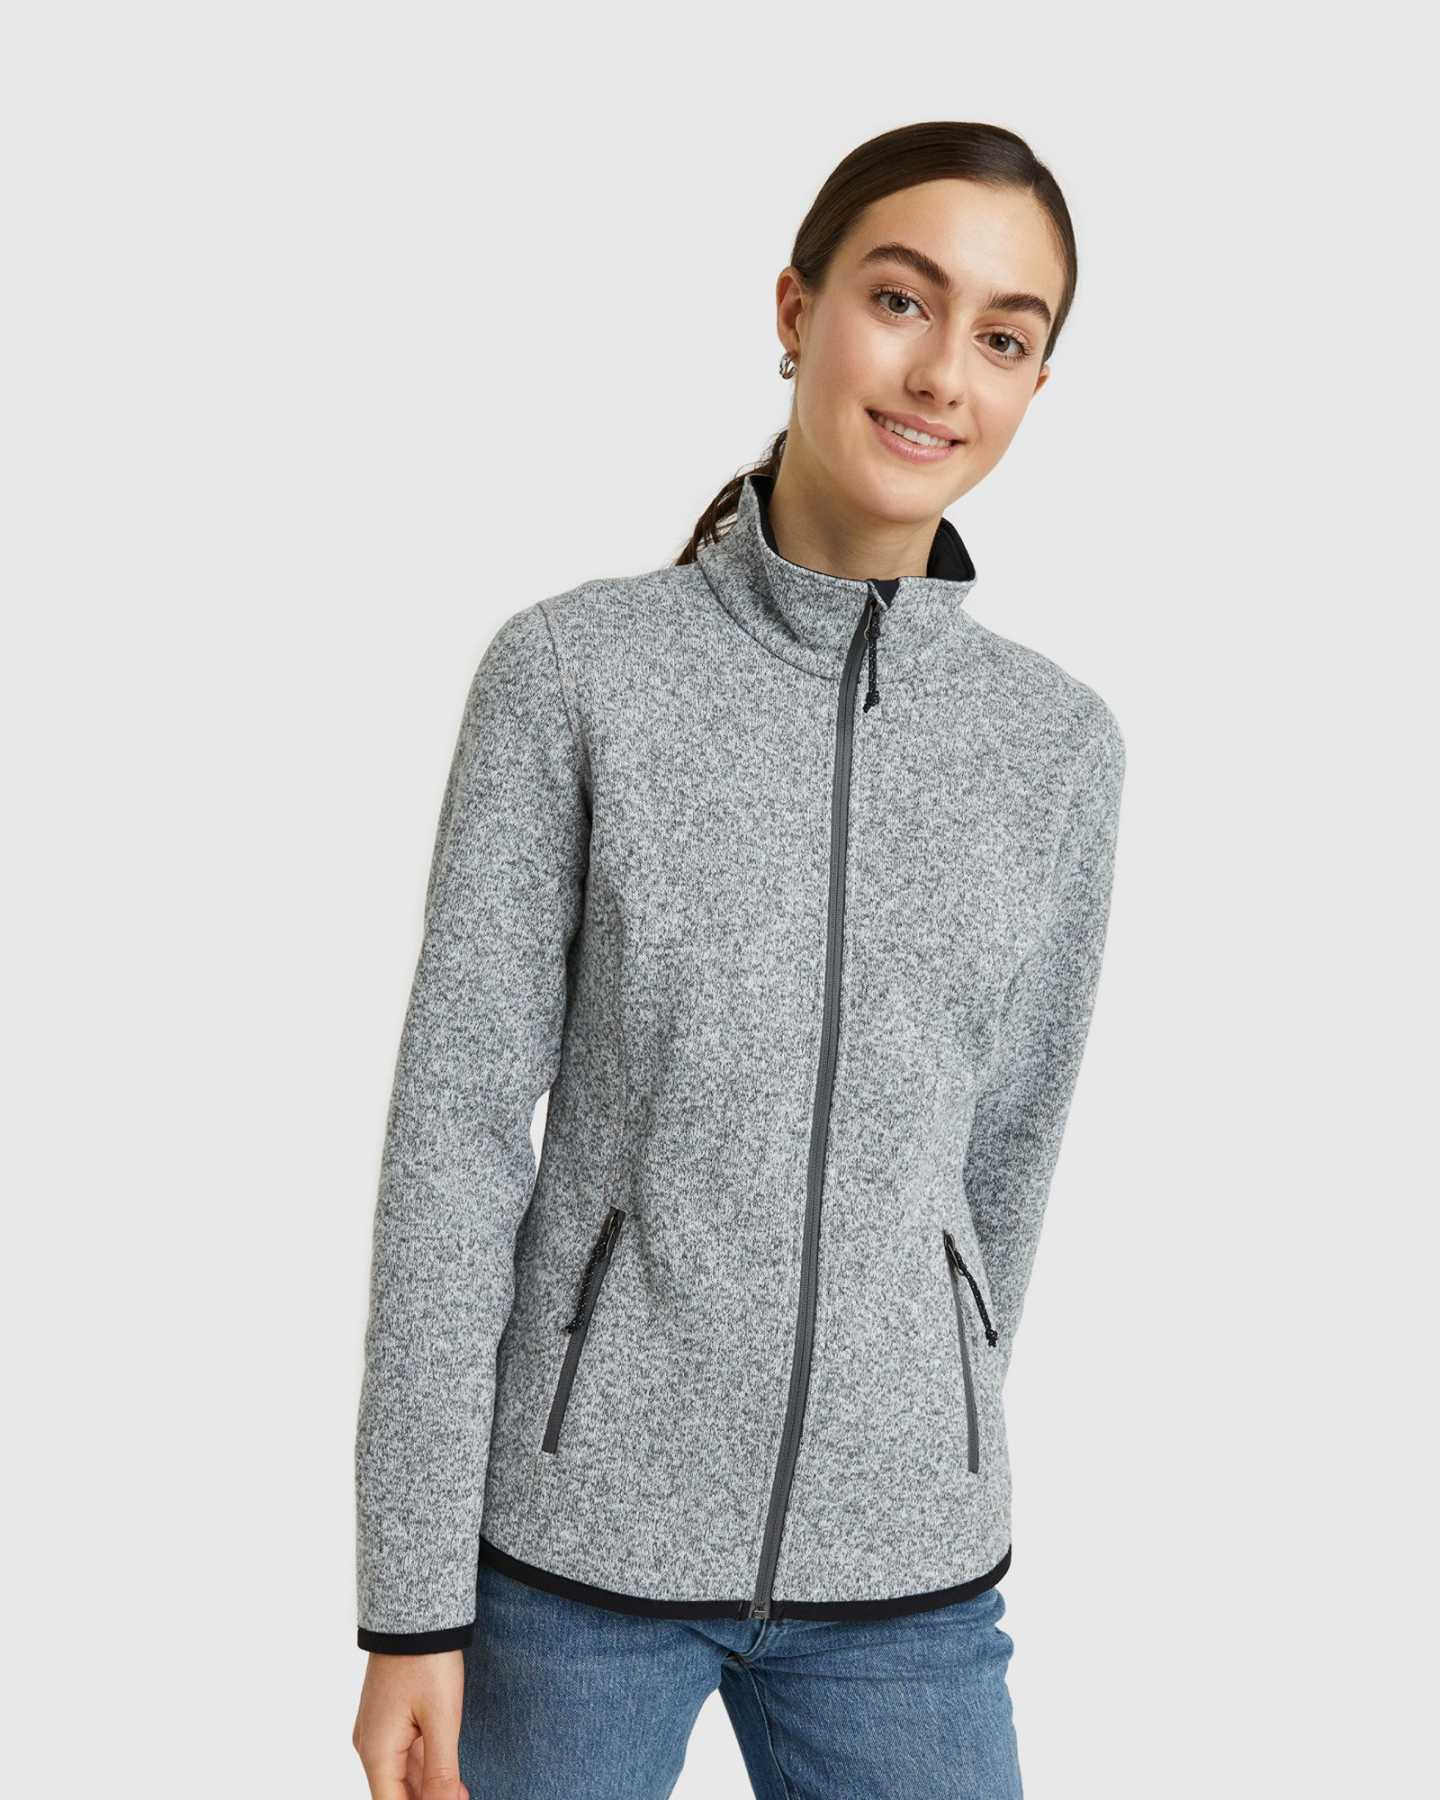 Full Zip Sweater Fleece Jacket - 13649938382959